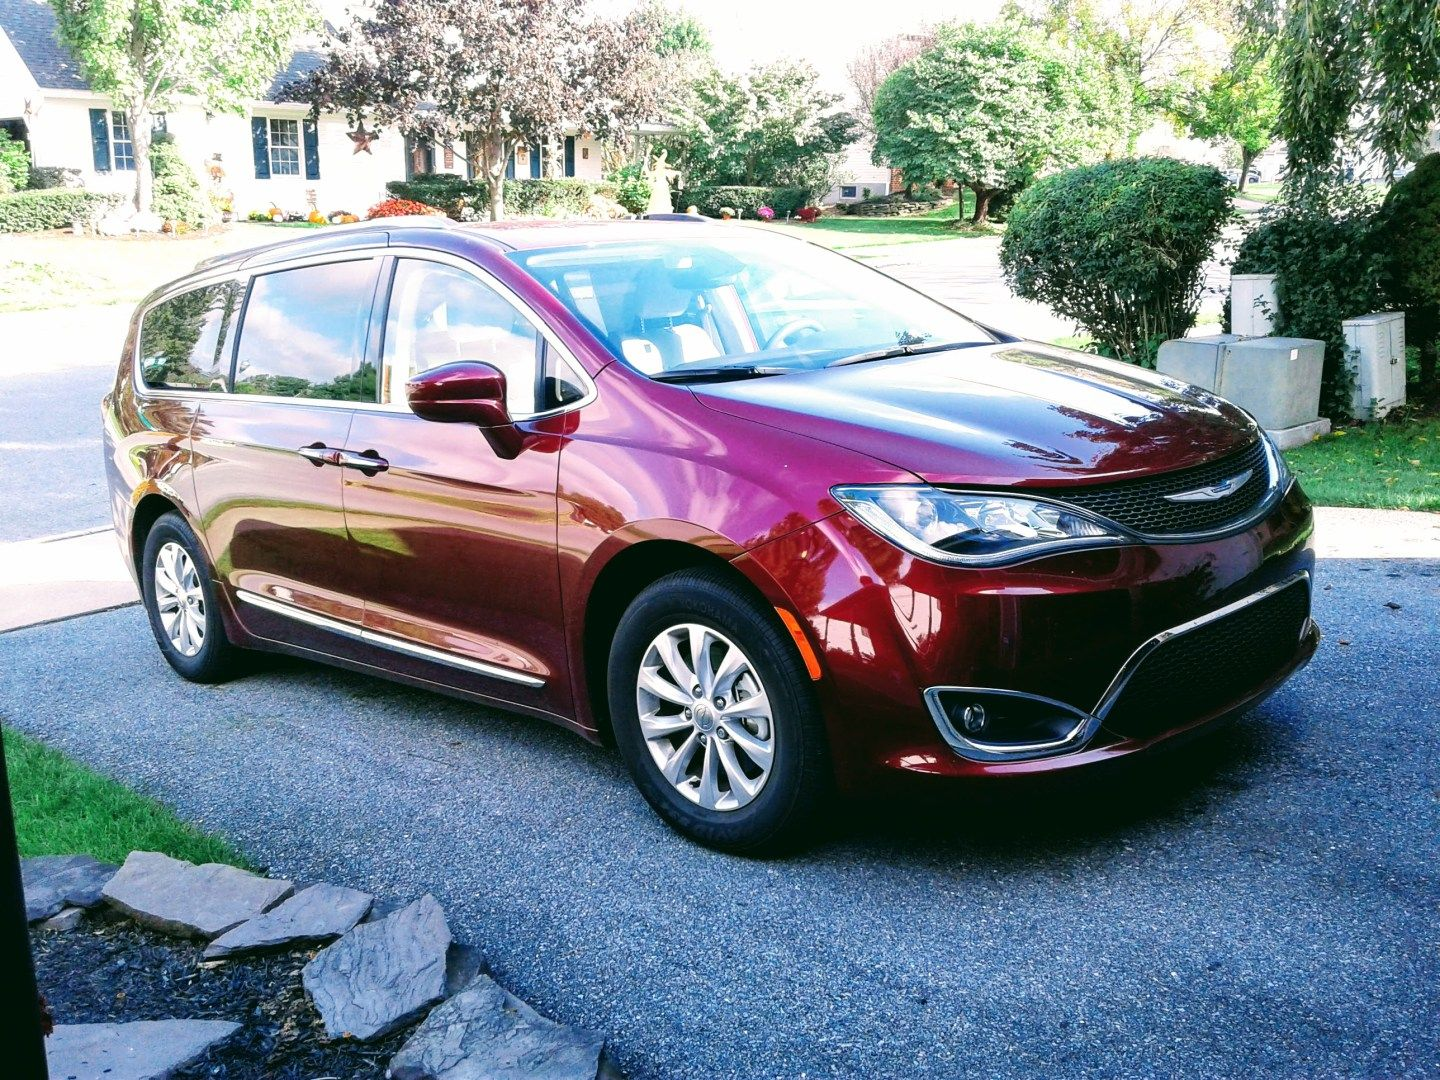 Our 2018 Chrysler Pacifica Review Chrysler Pacifica Pacifica